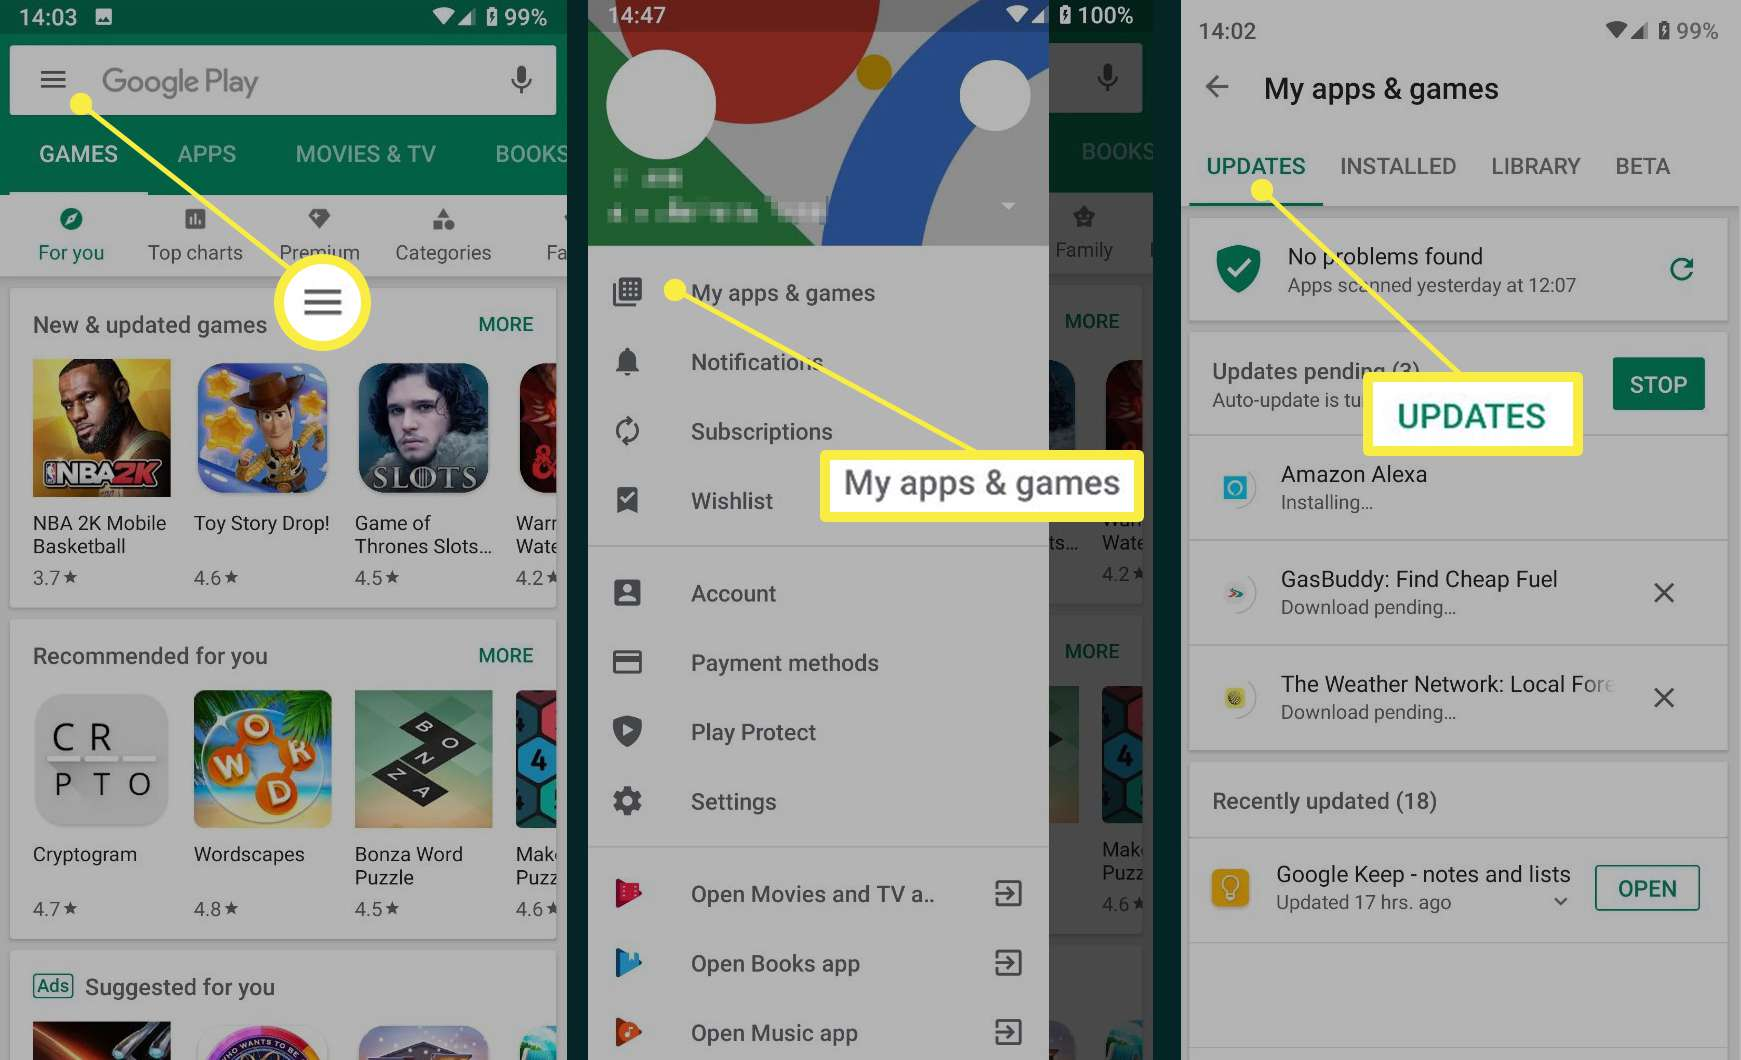 Android Update screens